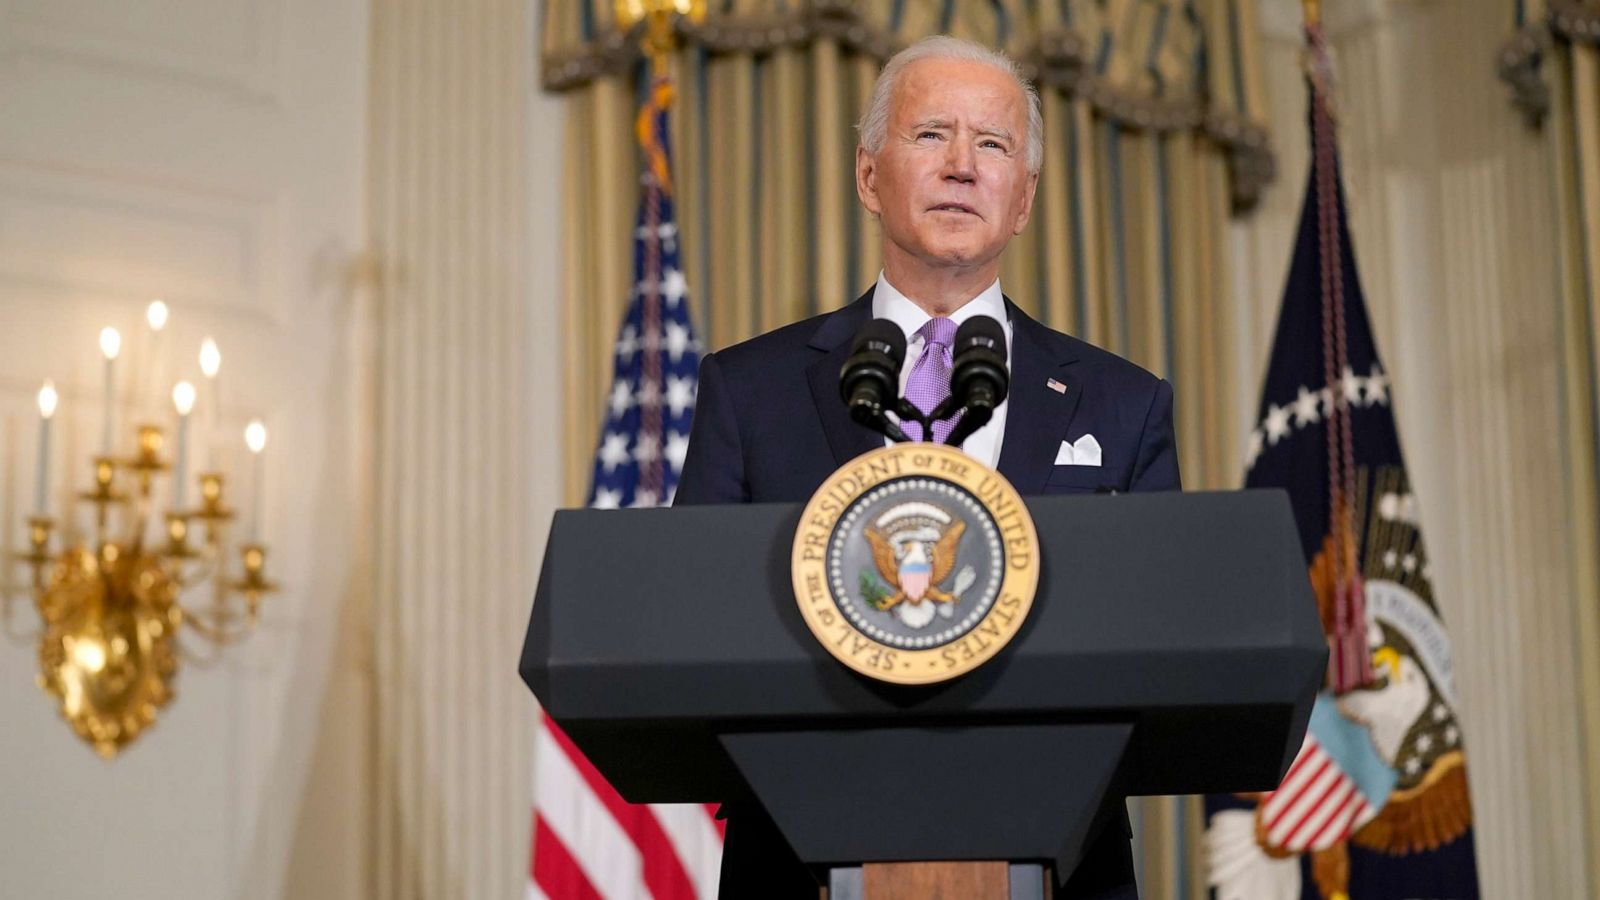 Biden's 1st 100 days live updates: Biden prioritizes climate with executive actions